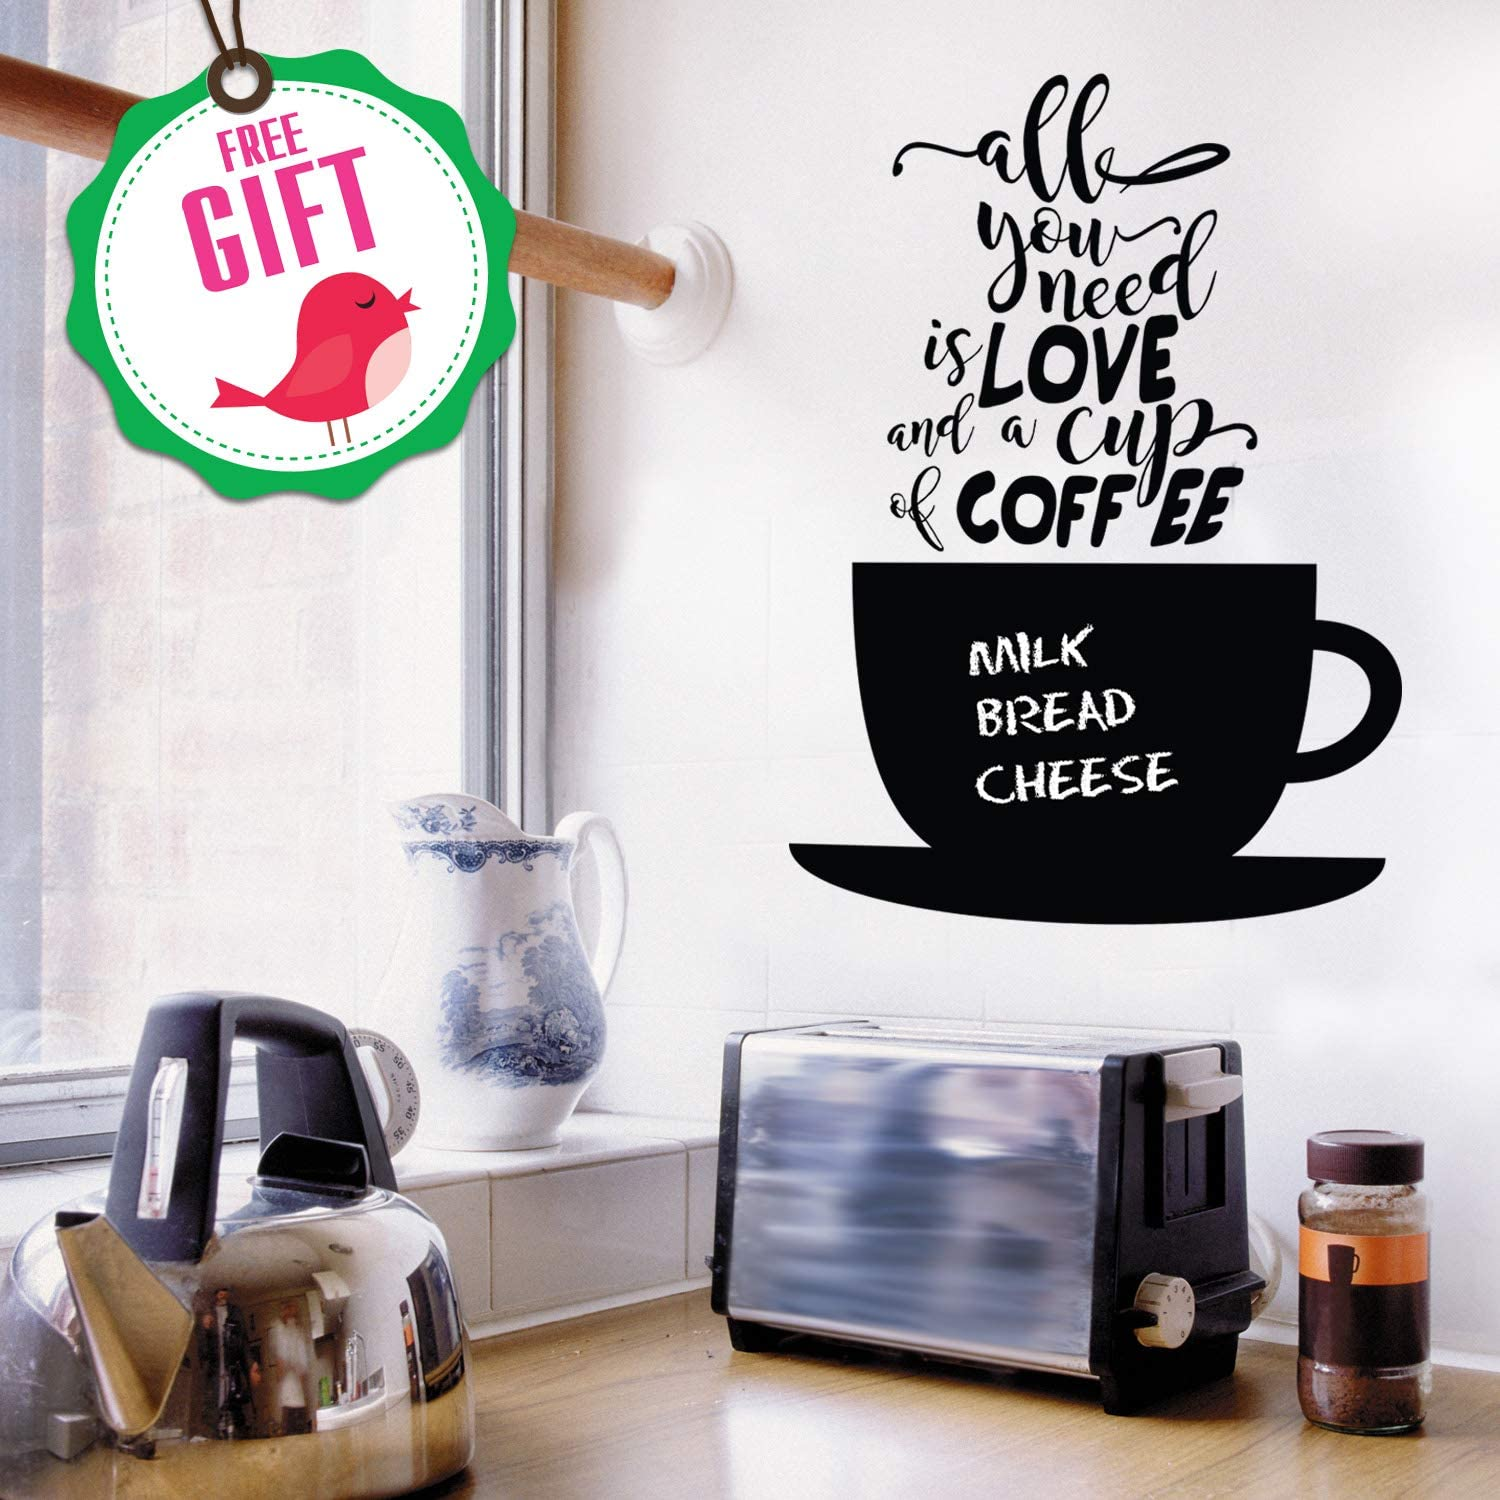 Coffee Cups Wall Stickers Kitchen Quote 2 Stikers Shop Art Decor Bar Decals